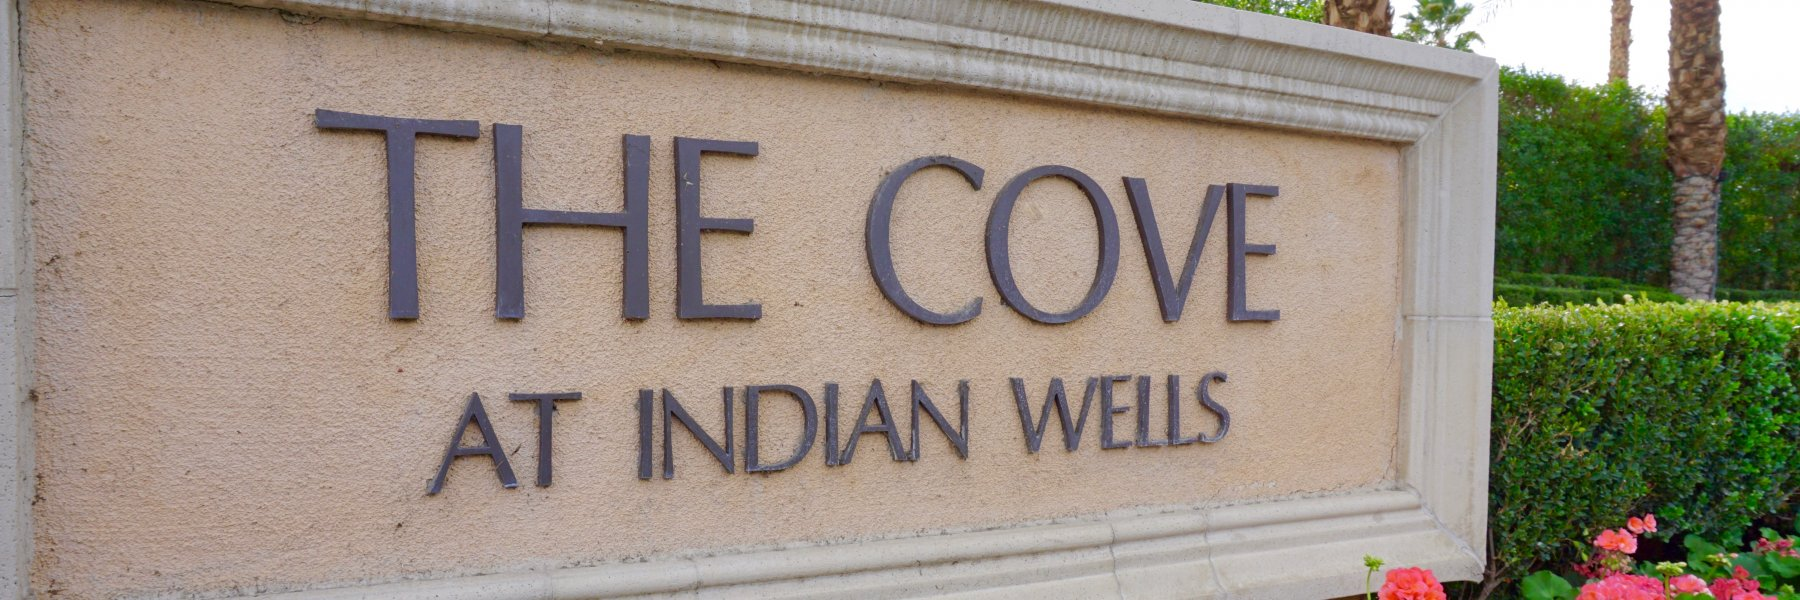 The Cove at Indian Wells is a community of homes in Indian Wells, California